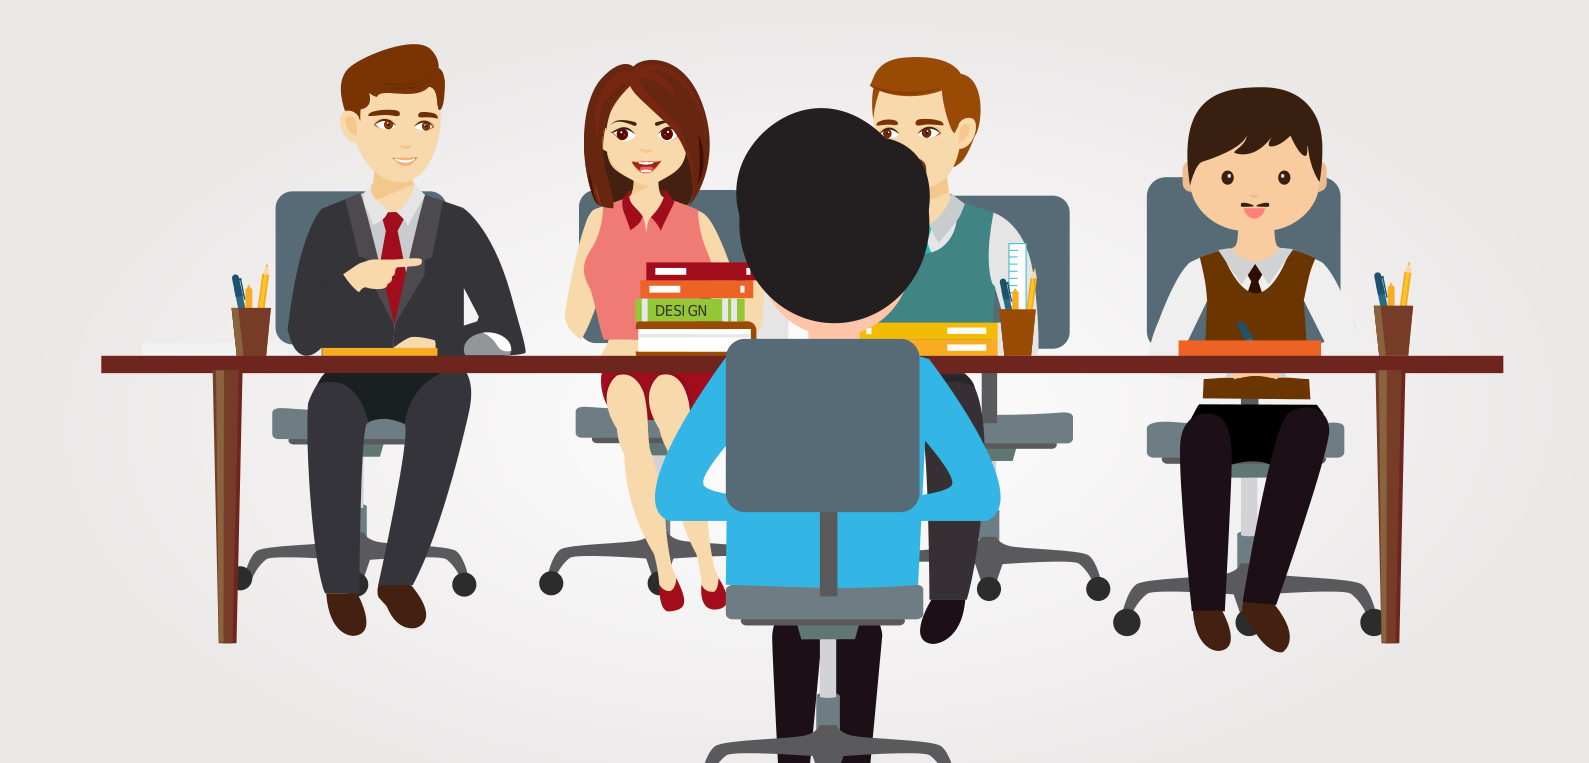 post-image_file-Efficient_Panel_Interviewing_teamb.png